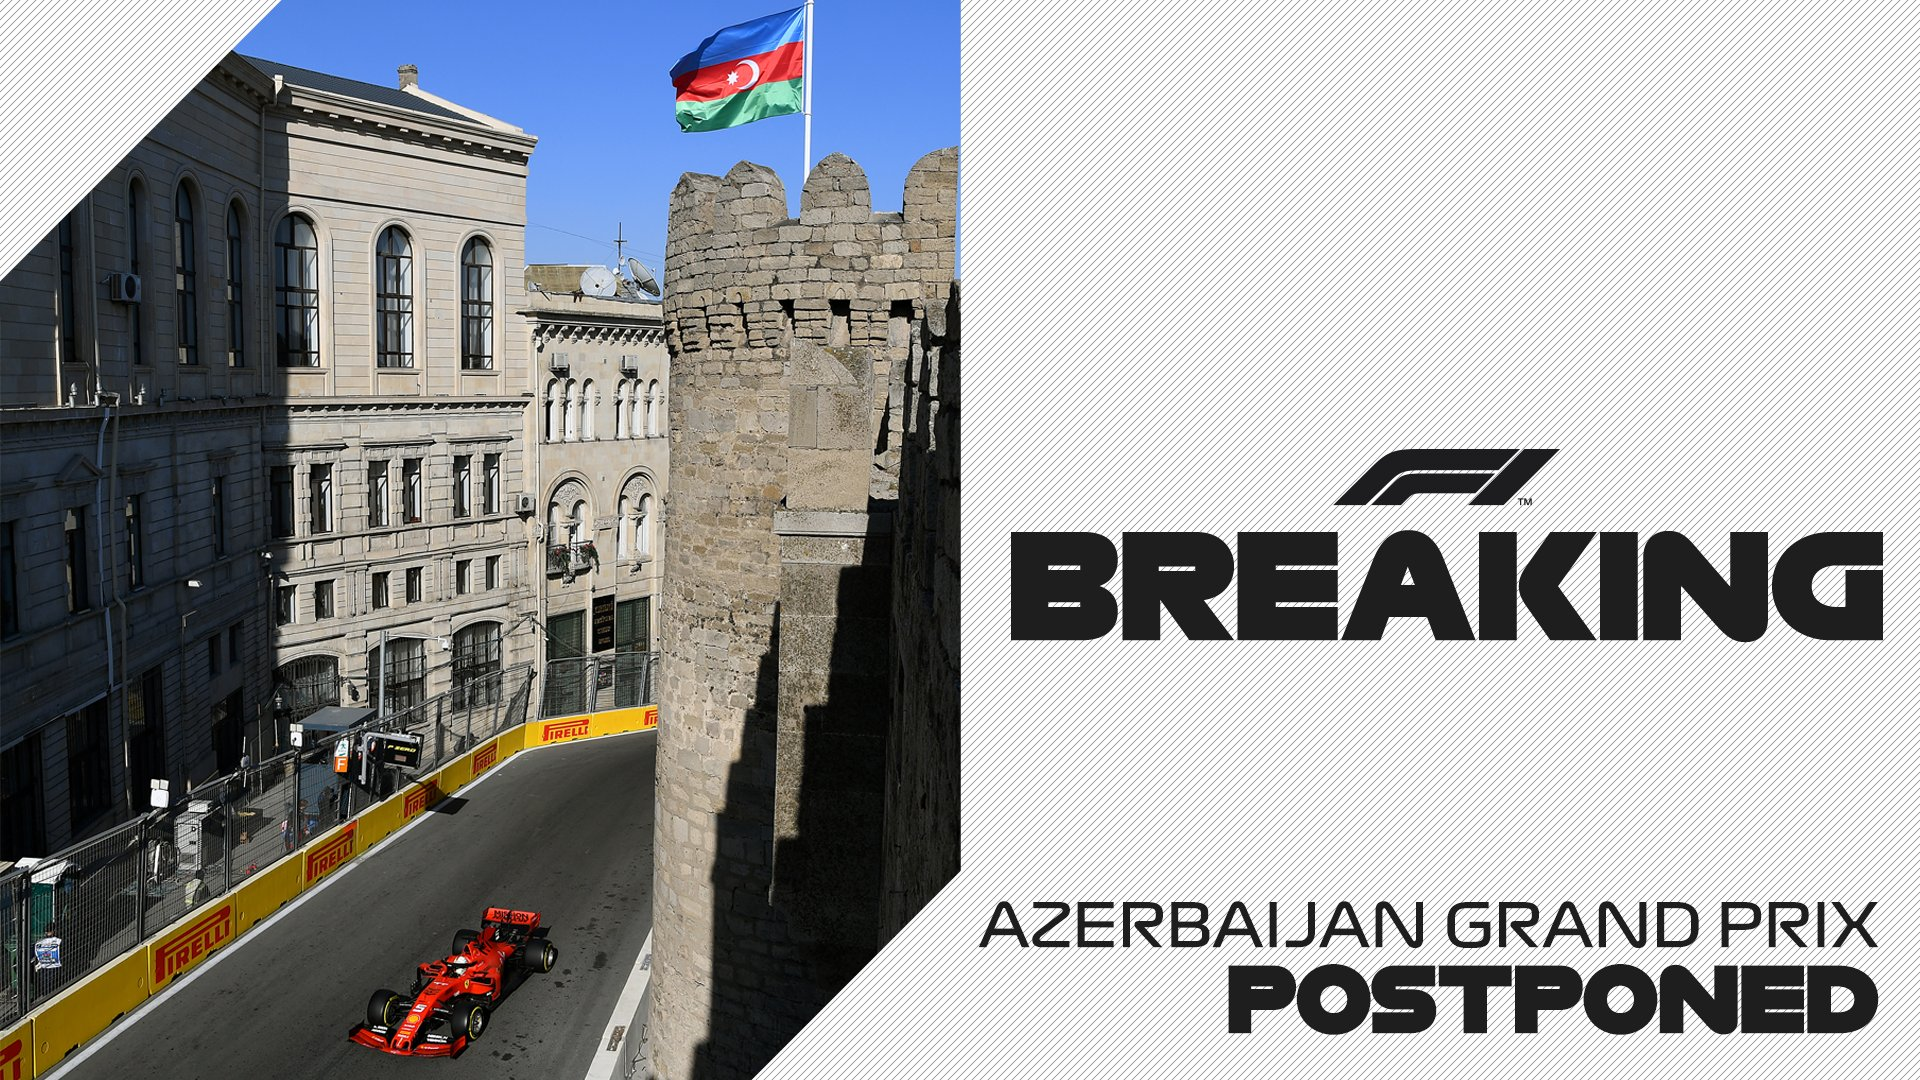 Organisers of the Azerbaijan Grand Prix have taken the decision to postpone the 2020 race due to the global spread of Coronavirus https://t.co/o5cKQb2obY